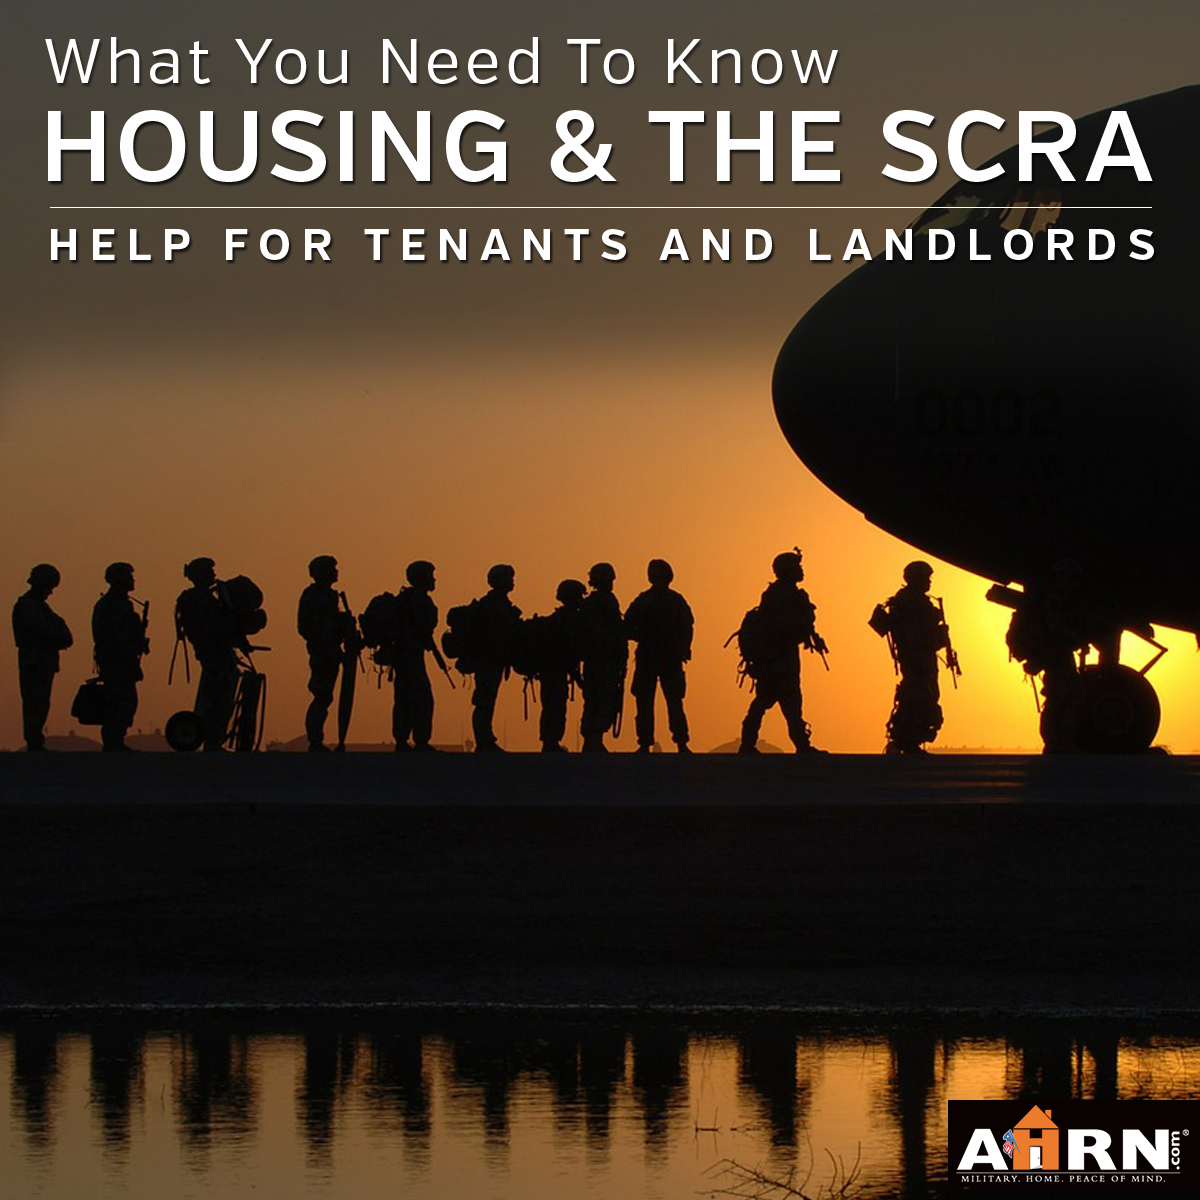 The Service Members Civil Relief Act Help For Landlords And